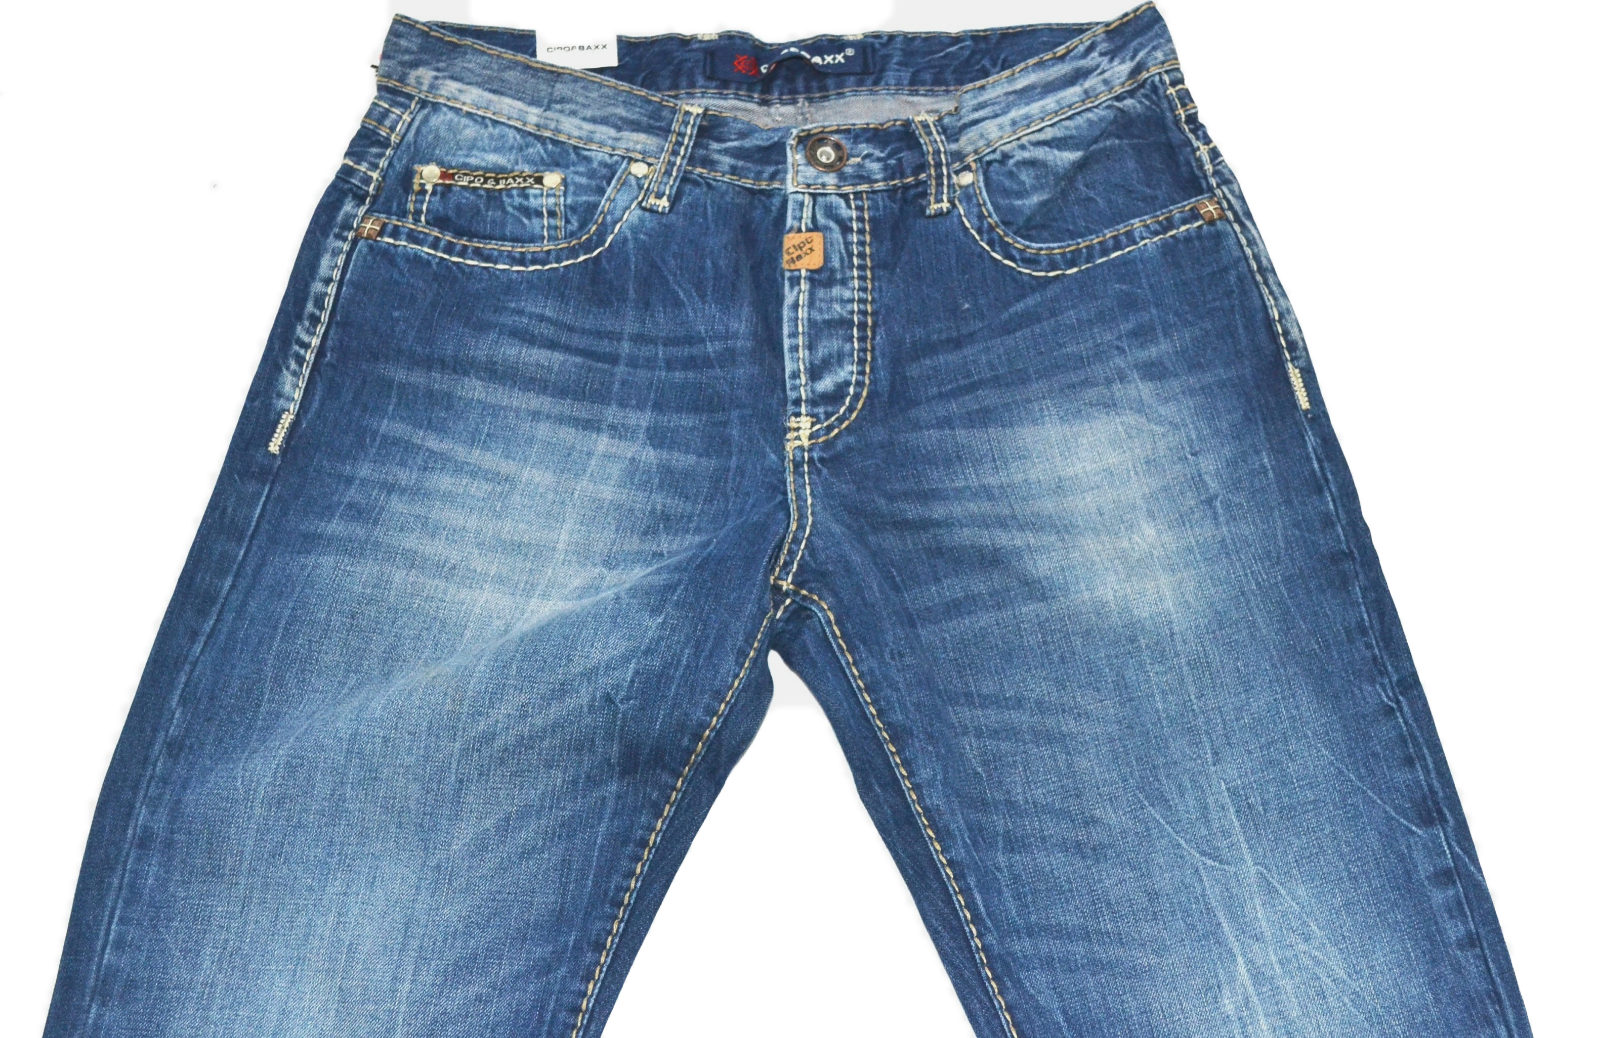 Cipo & Baxx Herrren JEANS CLASSICO C 688 must have worn out look